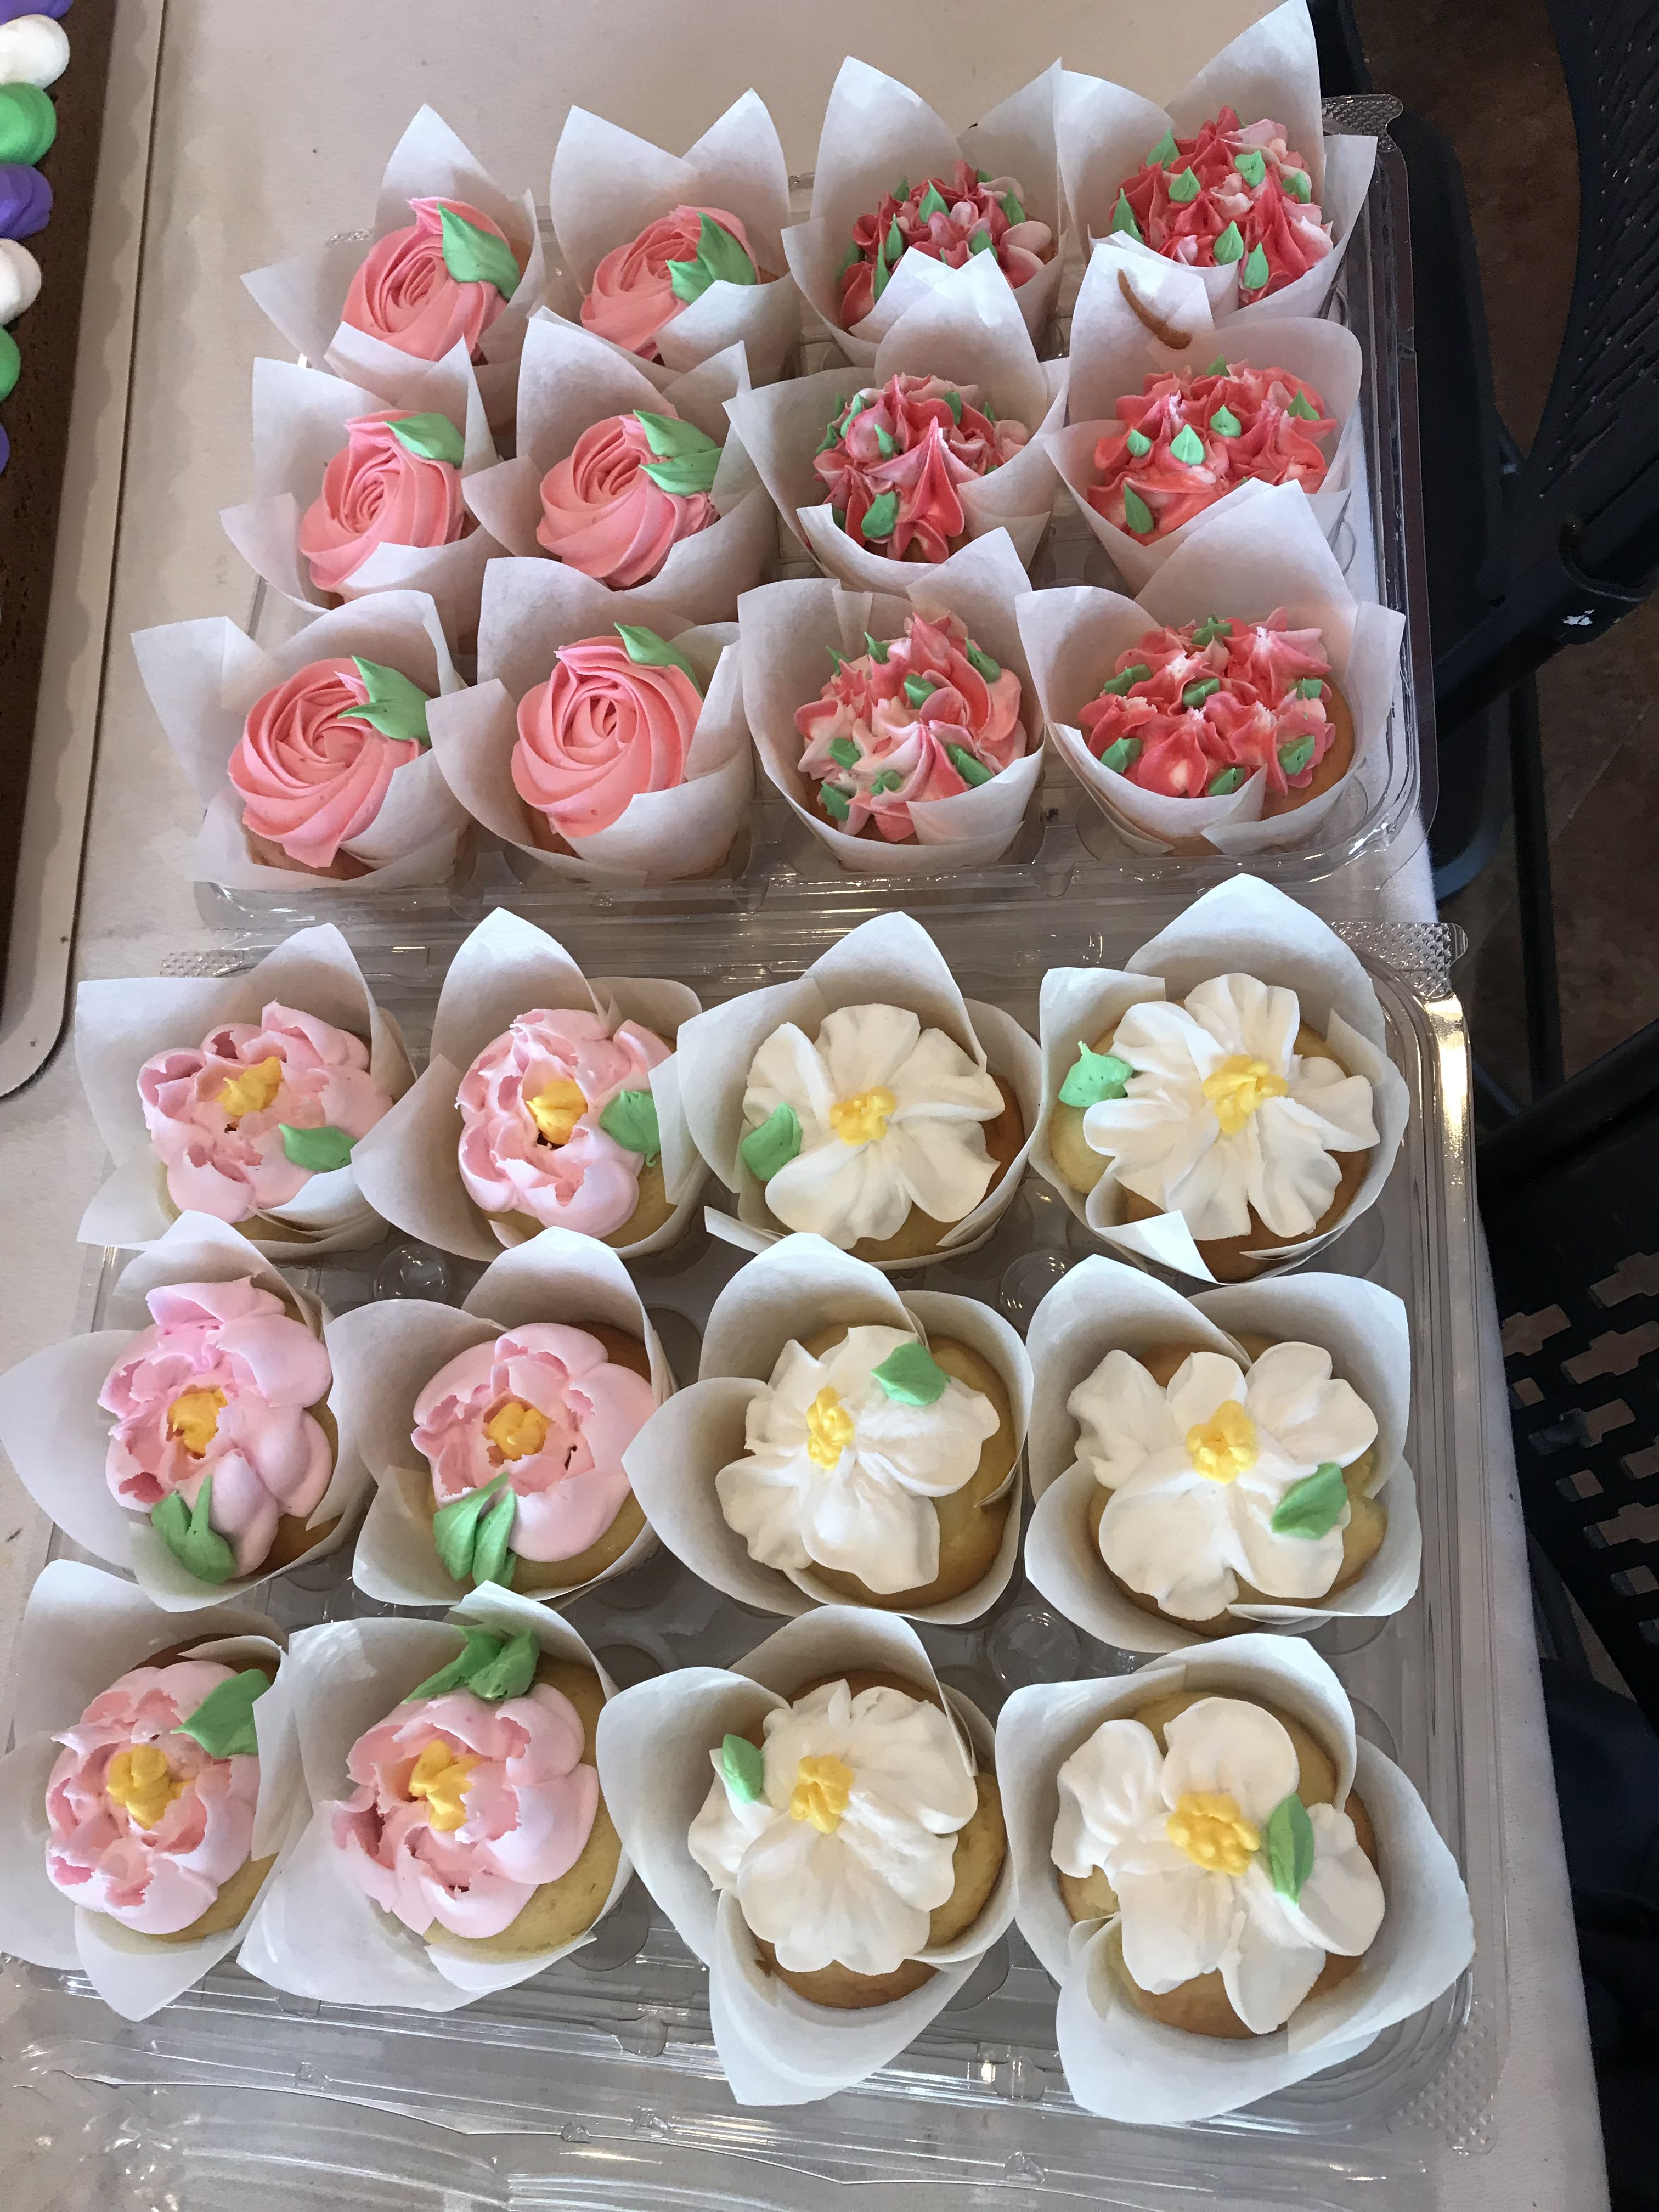 Floral Shabby Chic Pink White Cupcakes Tulip Liners Sweet Dreams Bakery Buttercream Decorating Shabby Chic Cupcakes